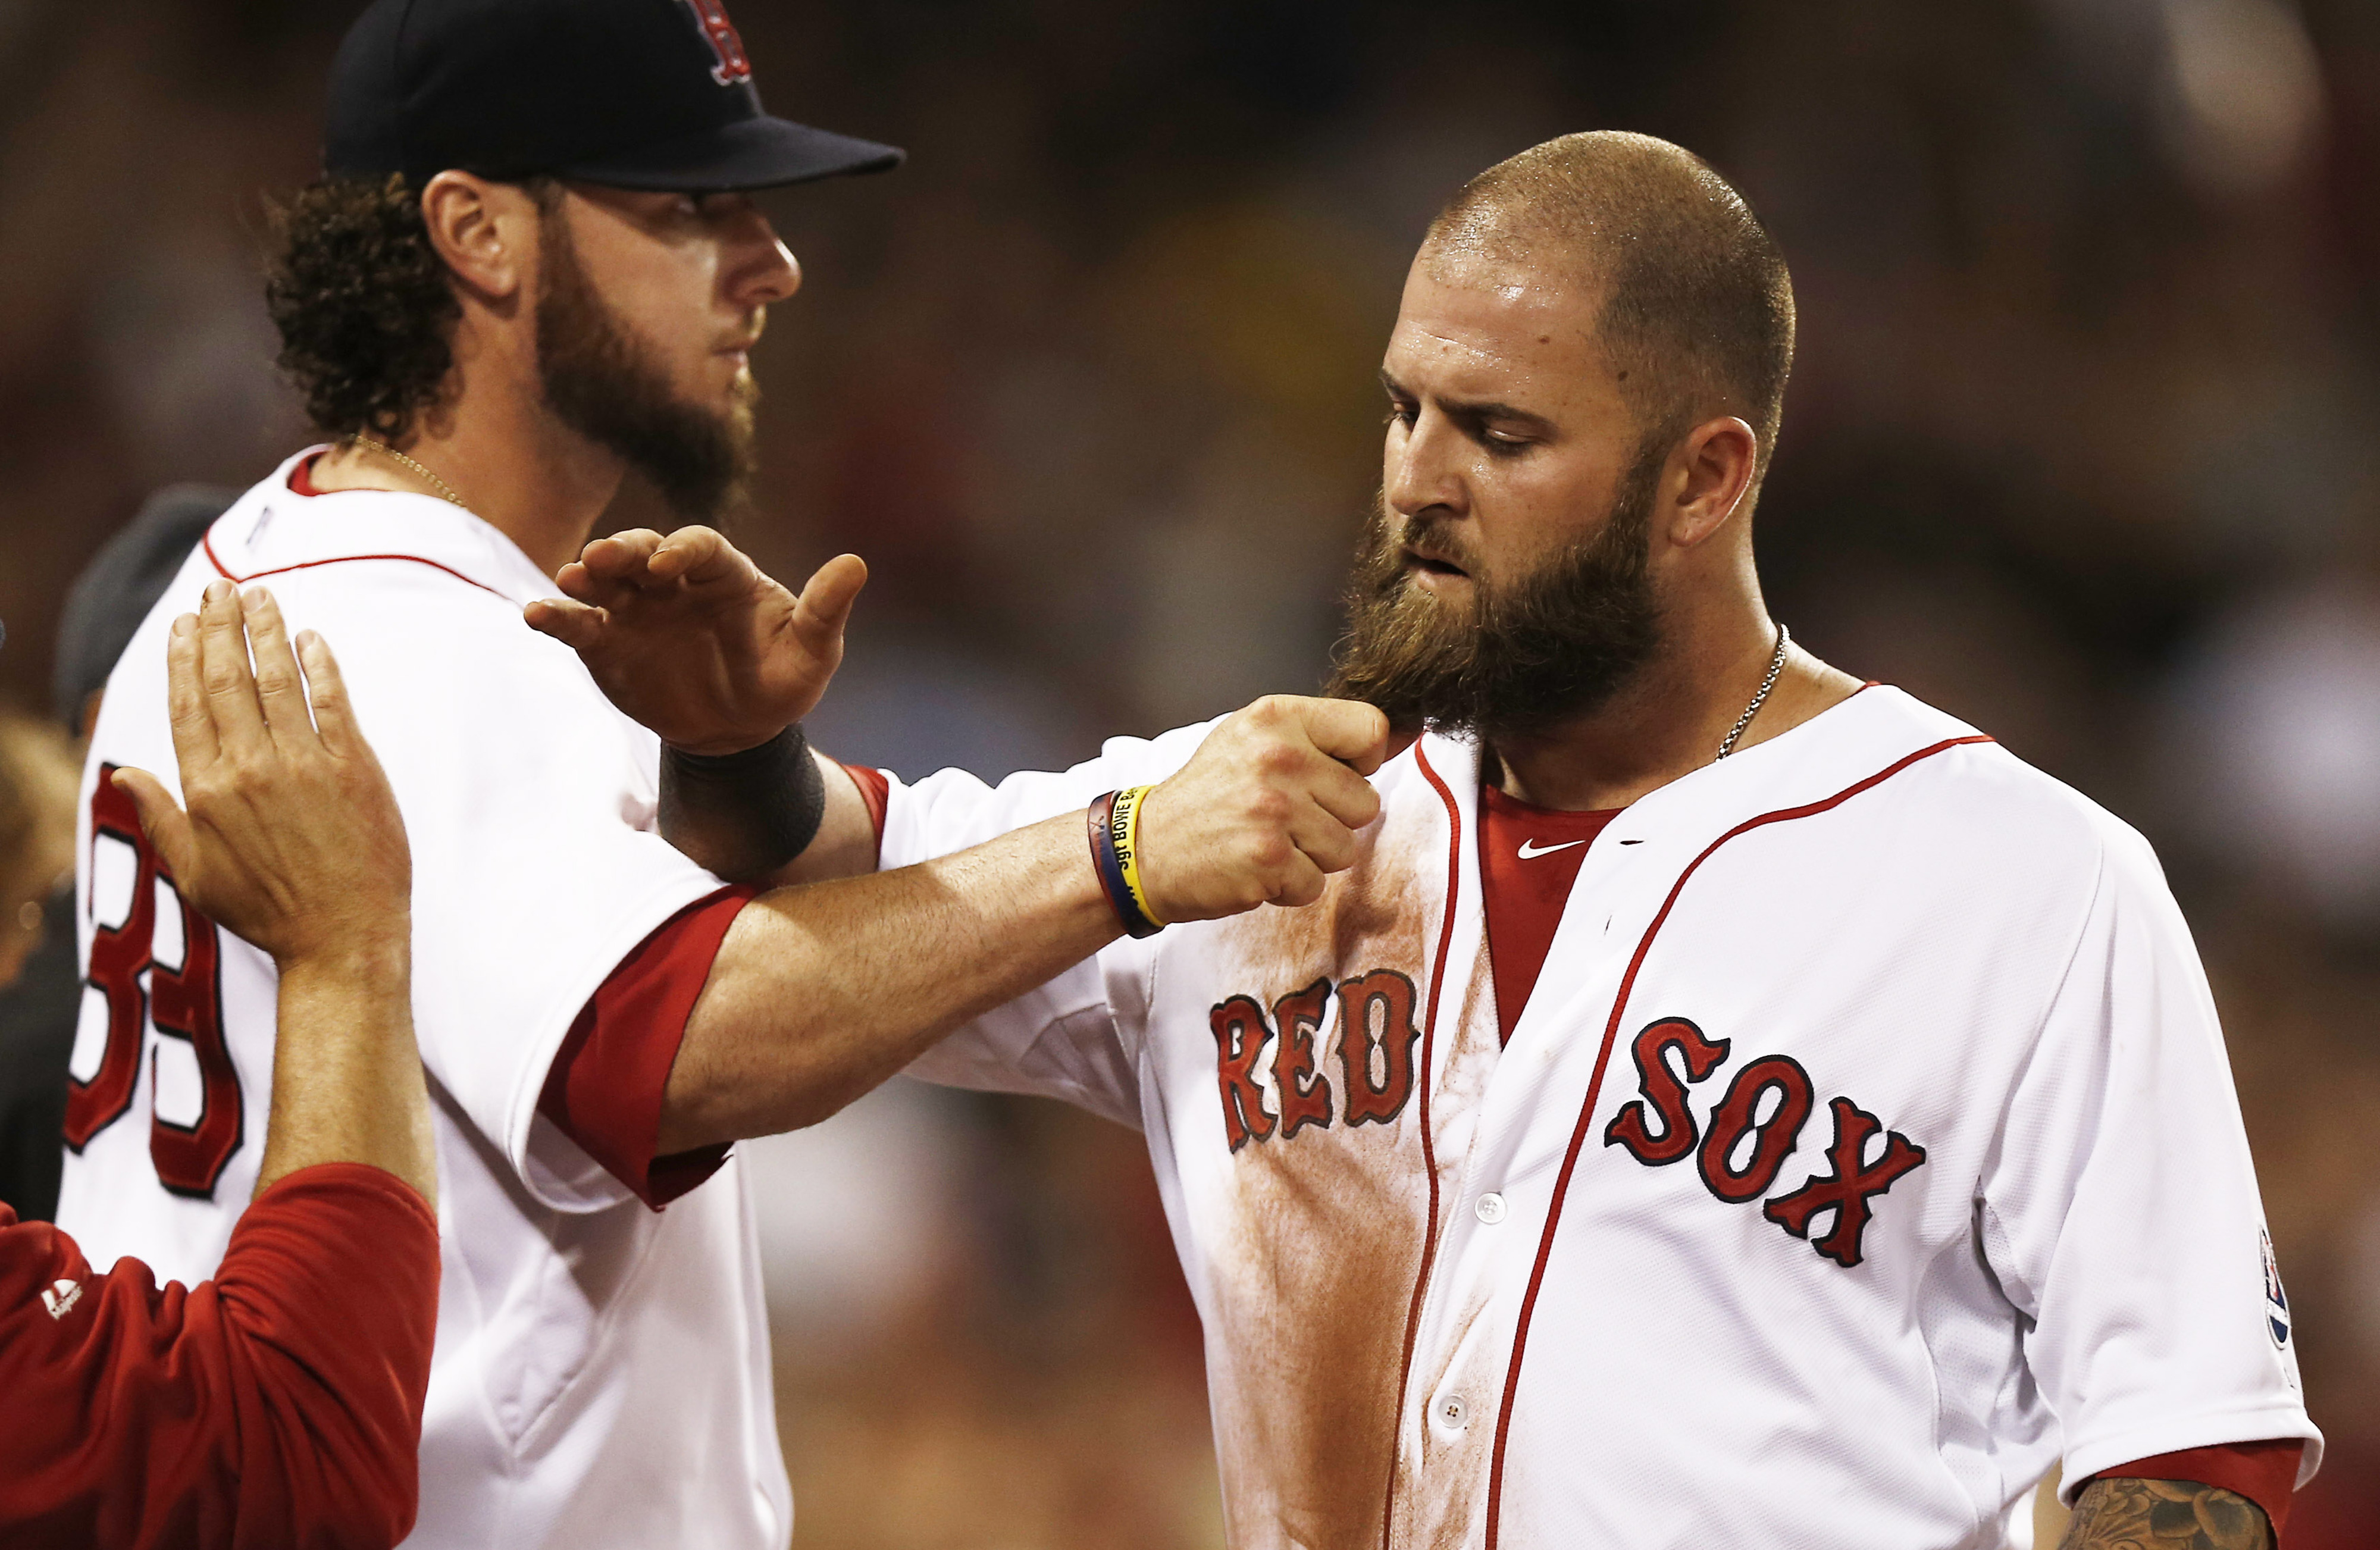 Mike Napoli wants return to Boston Red Sox